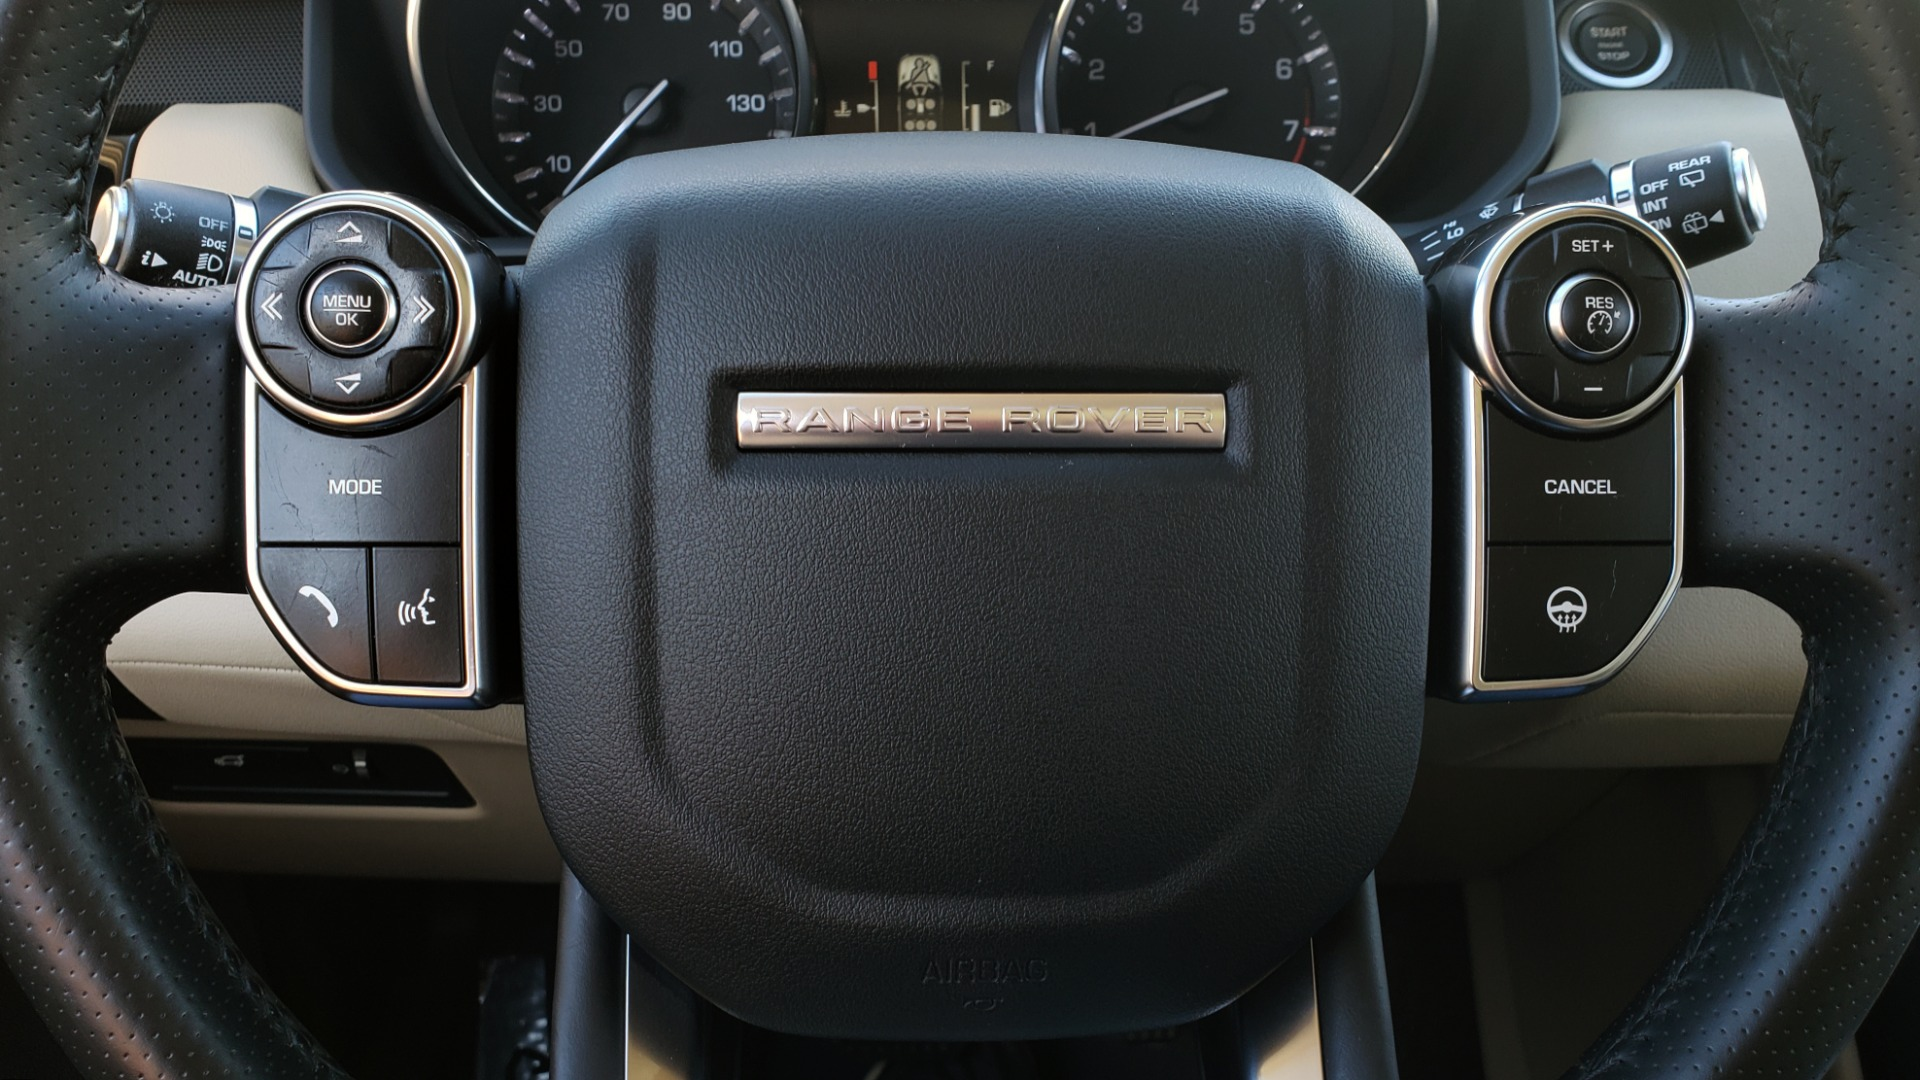 Used 2015 Land Rover RANGE ROVER HSE / 3.0L SC V6 / 8-SPD AUTO / NAV / PANO ROOF / REARVIEW for sale Sold at Formula Imports in Charlotte NC 28227 47